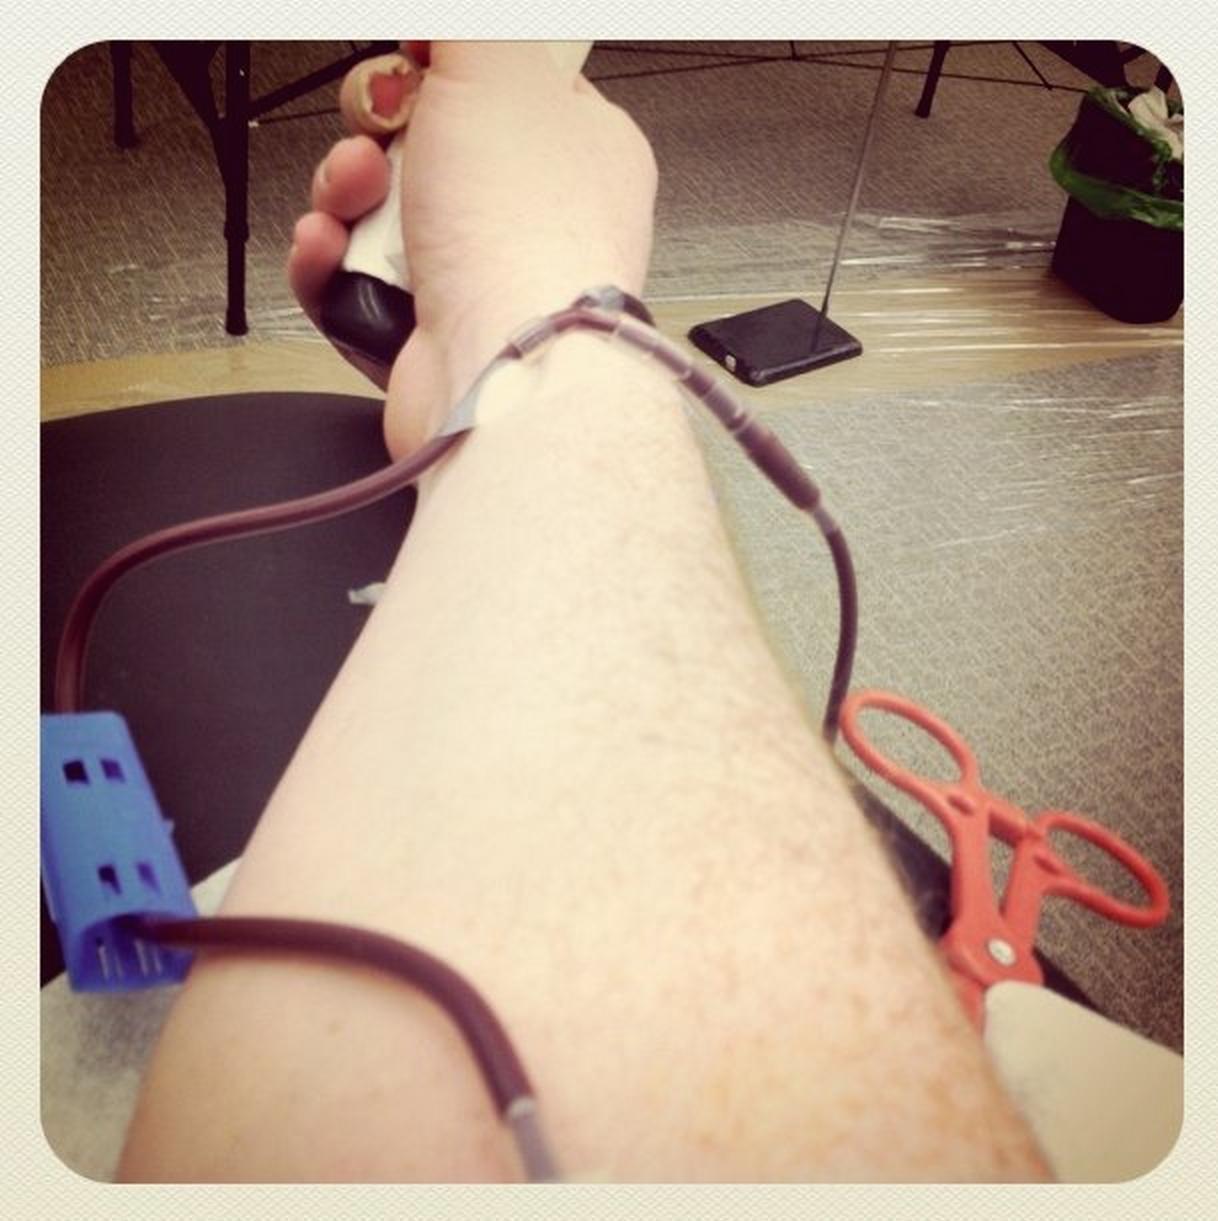 FDA To End Full Ban On Blood Donations From Gay, Bisexual Men